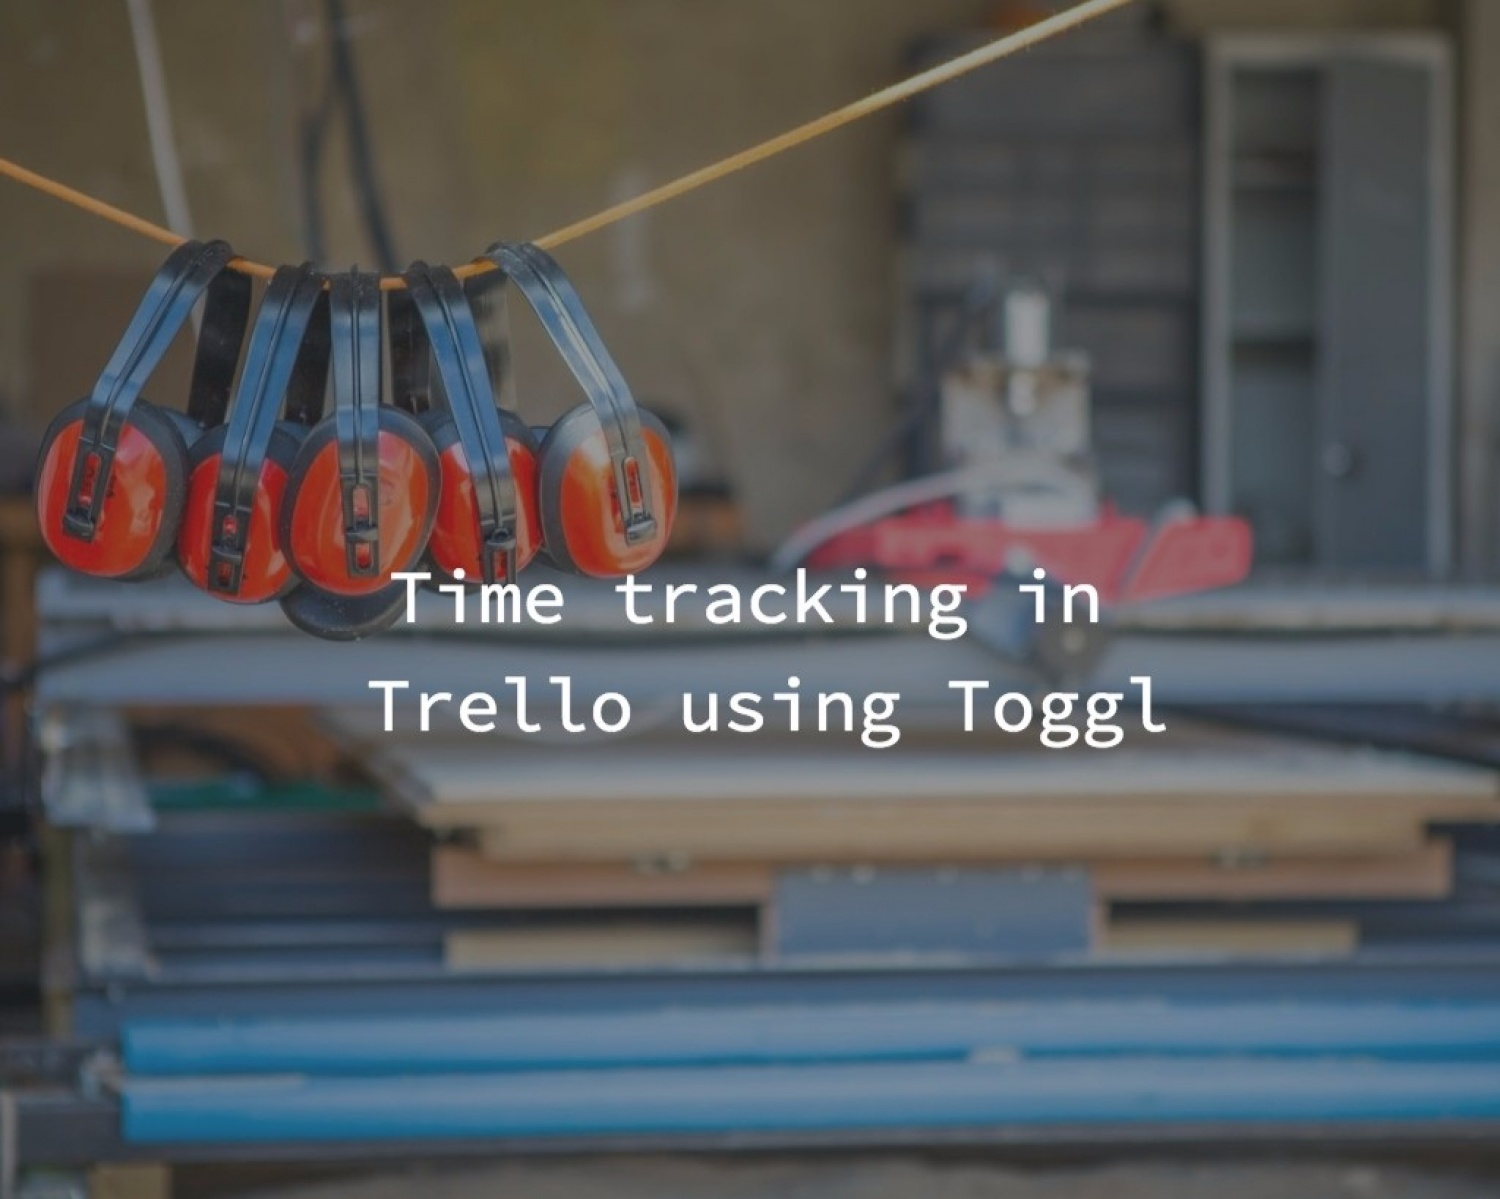 Time tracking in Trello using Toggl